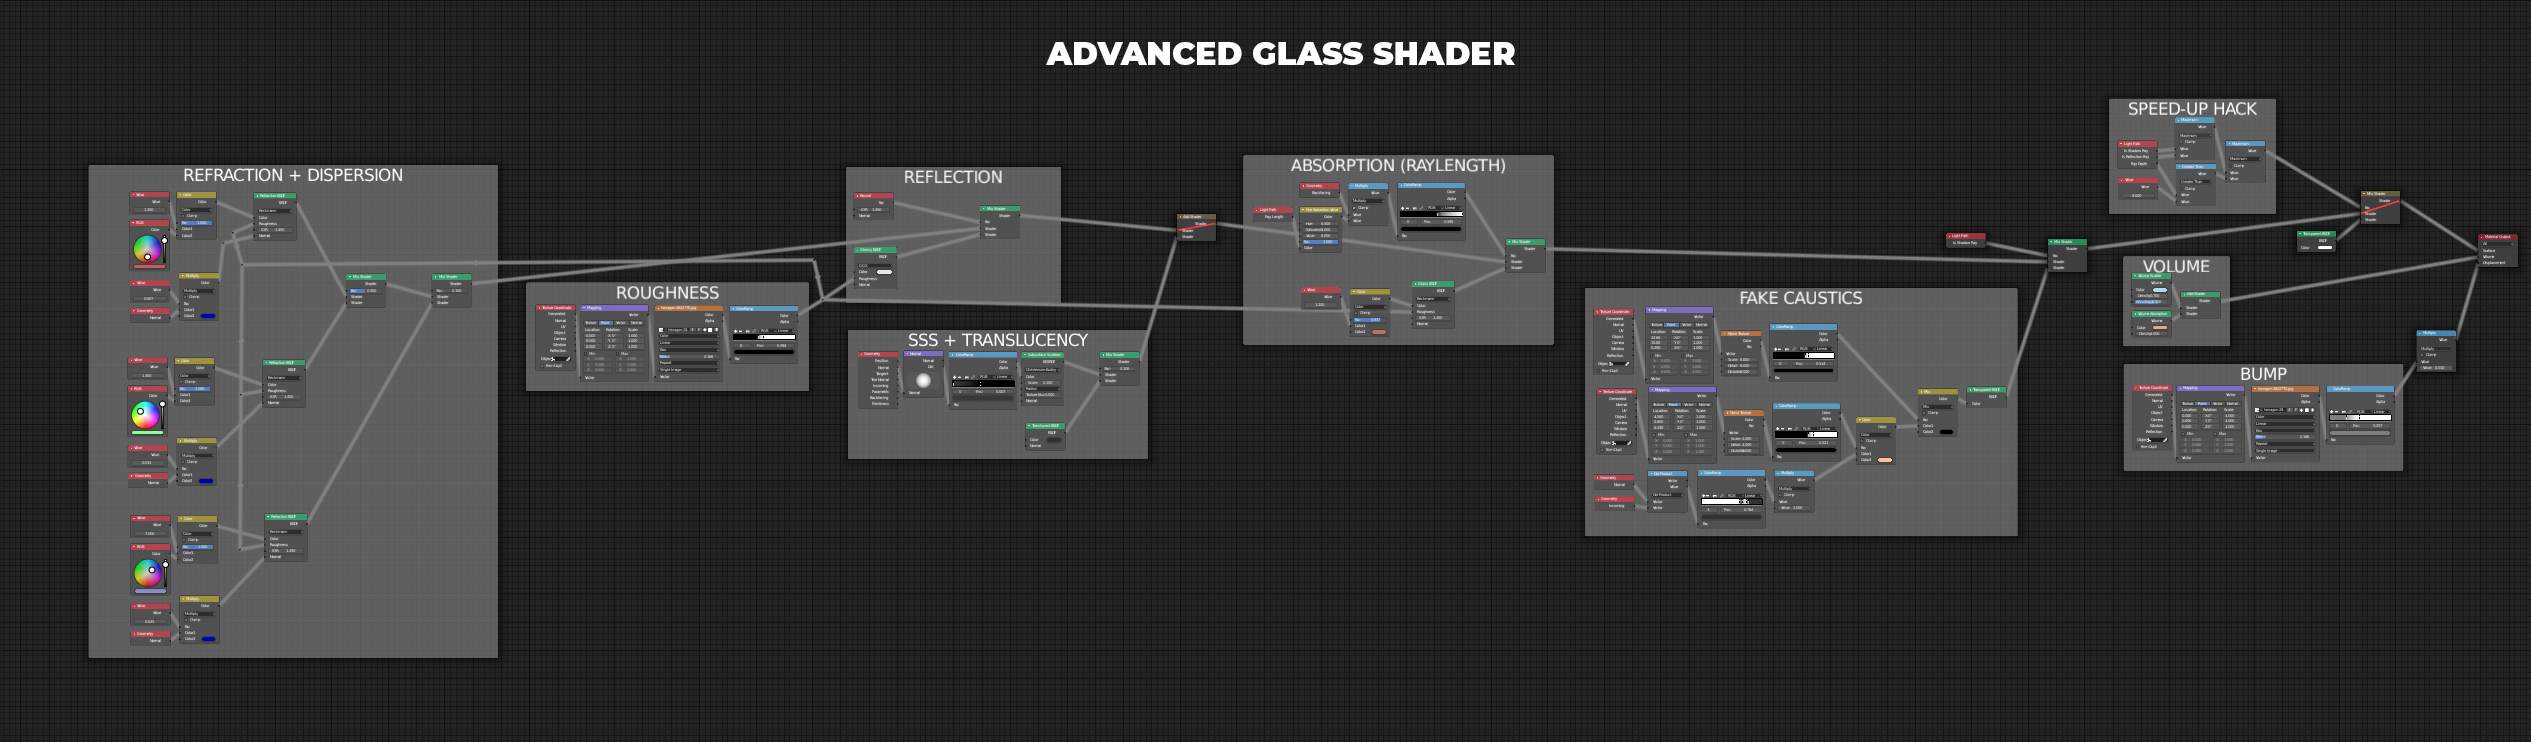 Advanced Glass Shader in Cycles - Blender Tutorial • Creative Shrimp